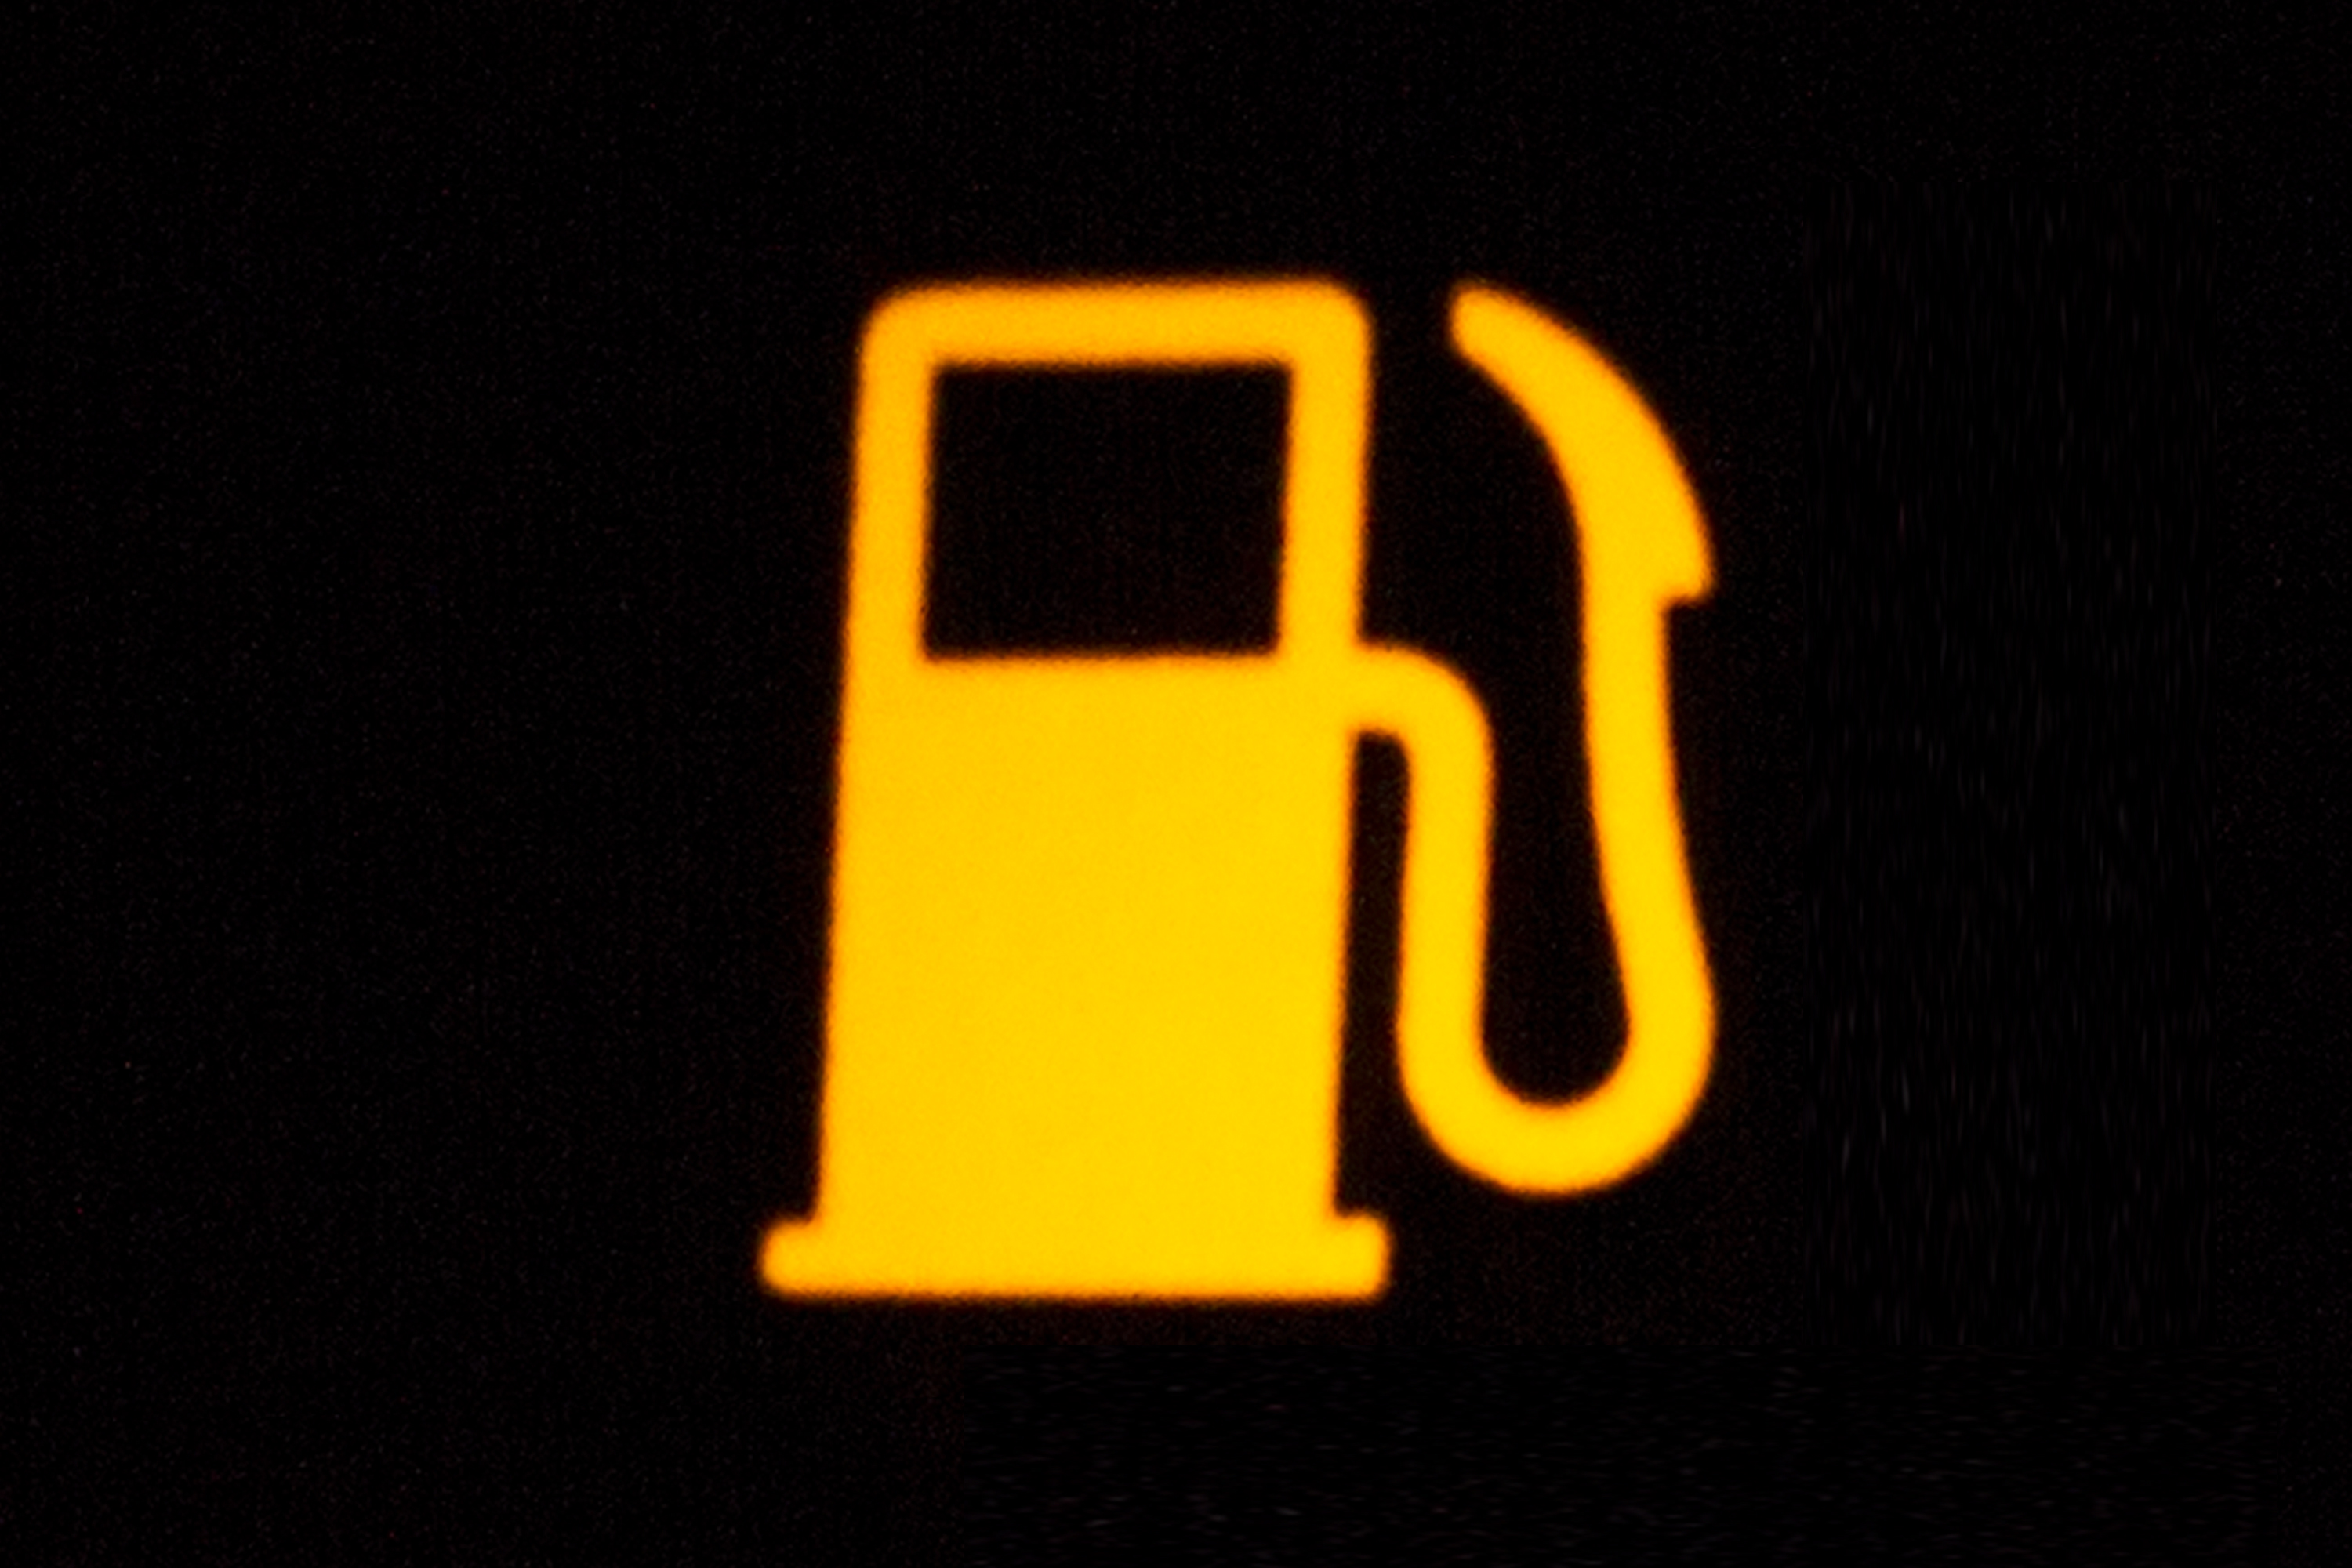 The meanings of the symbols on a car dashboard it still works this symbol a picture of a gas pump indicates that your gas level is low usually this light comes on when you have enough gas left to allow you to drive buycottarizona Choice Image